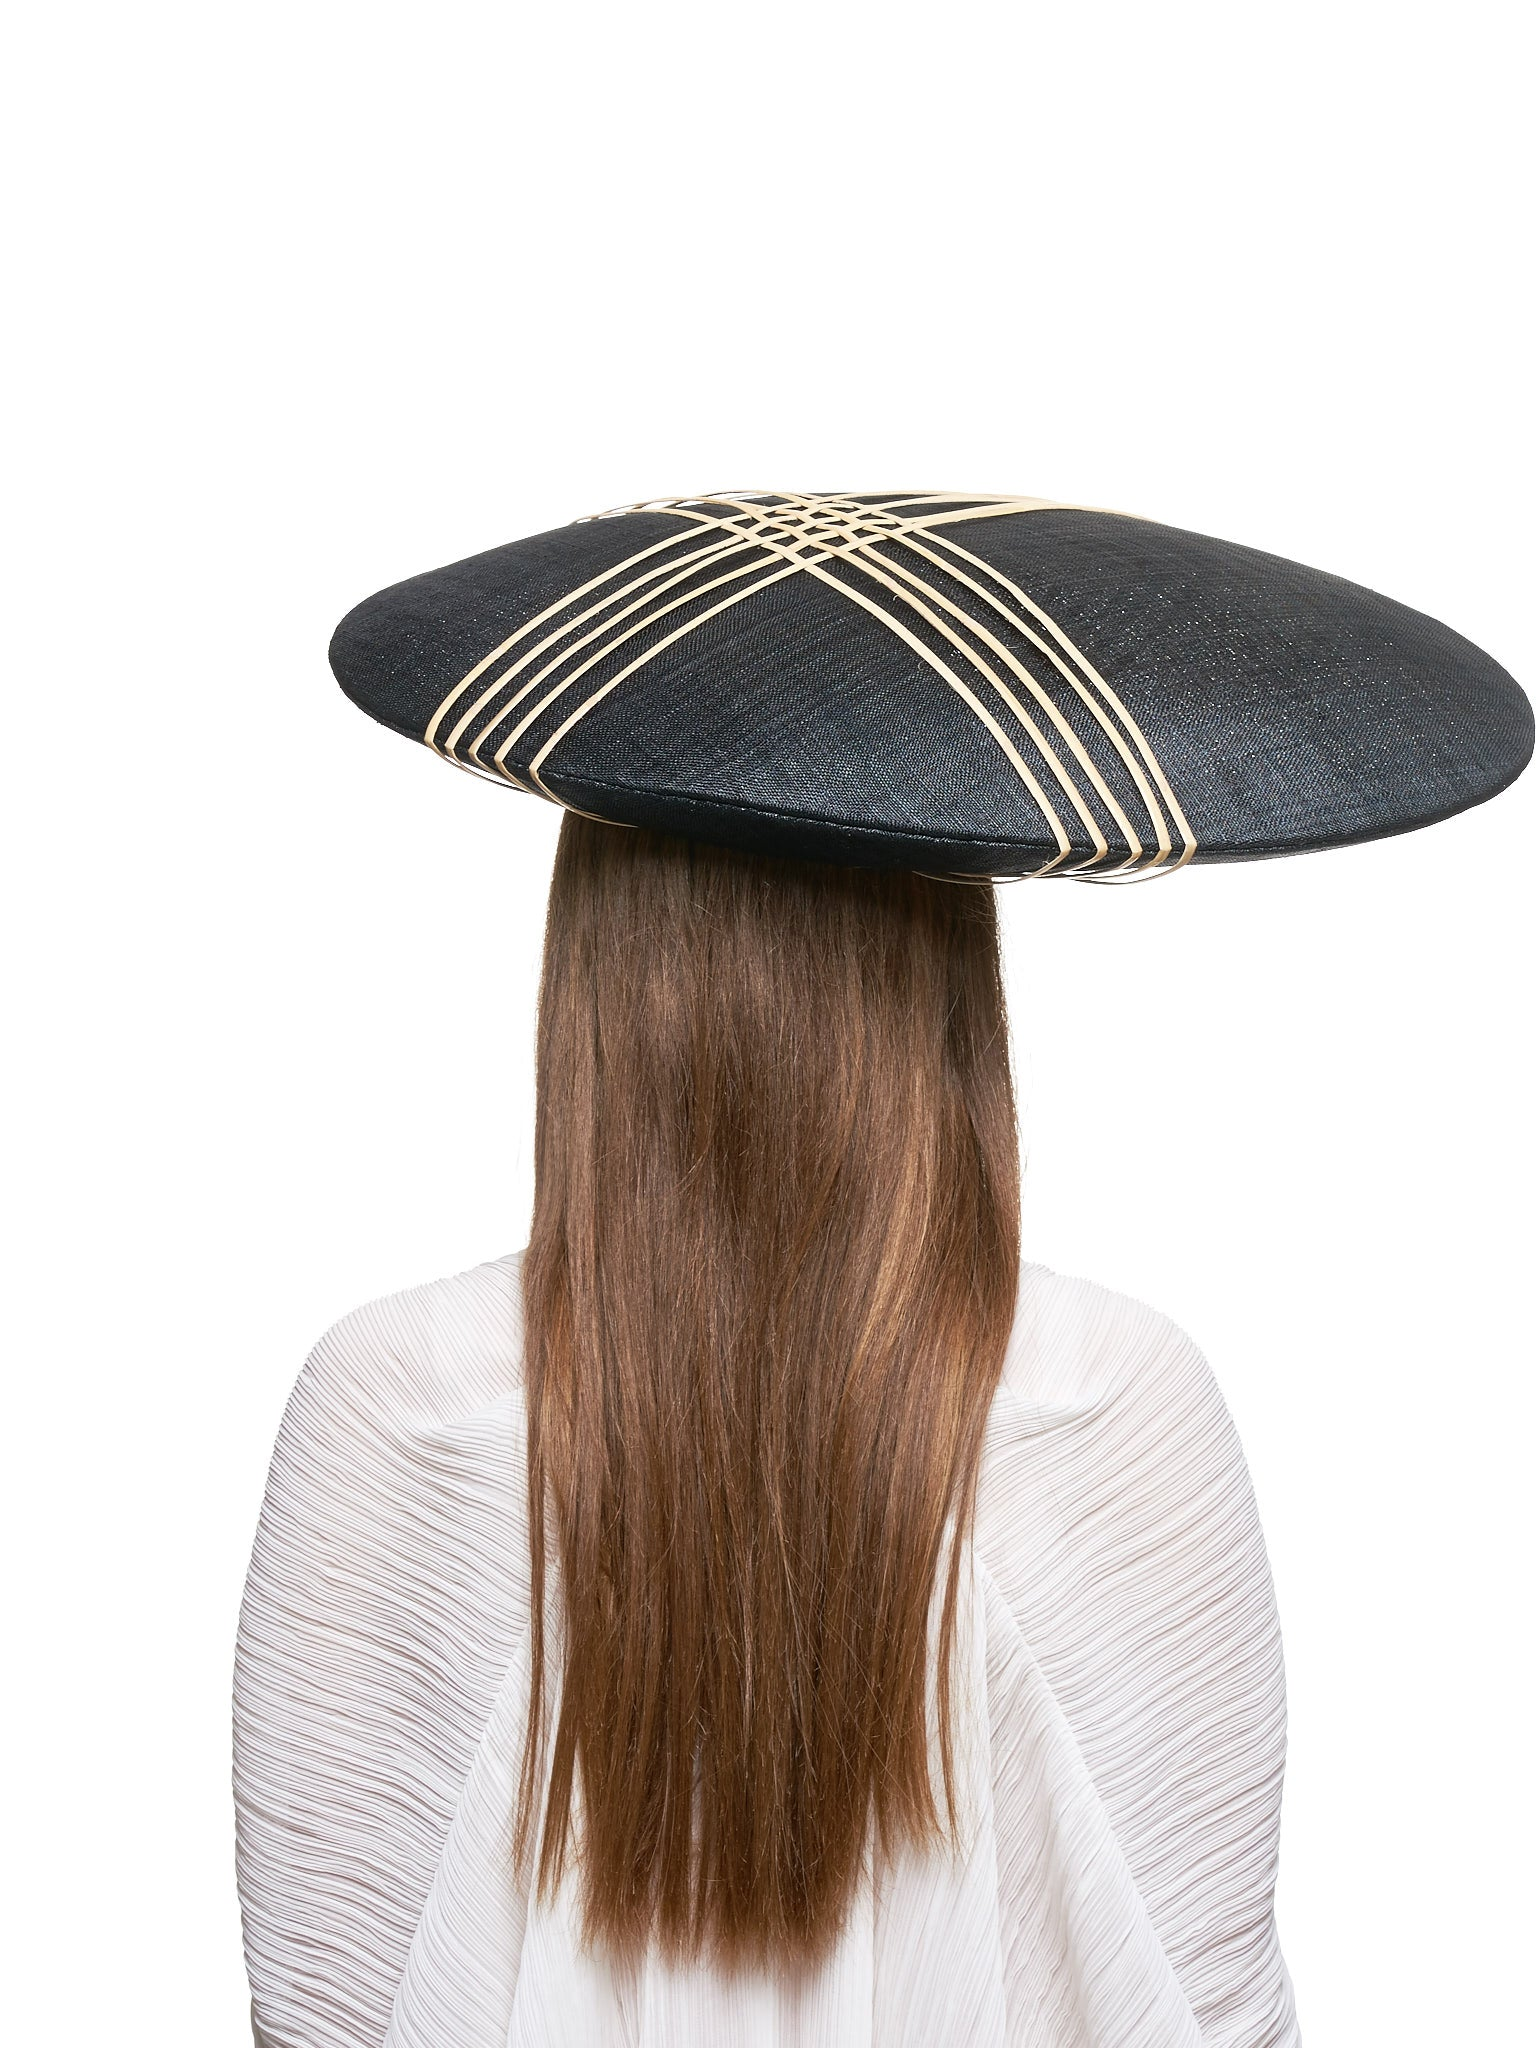 Wrap Hat (7-WRAP-BLACK)